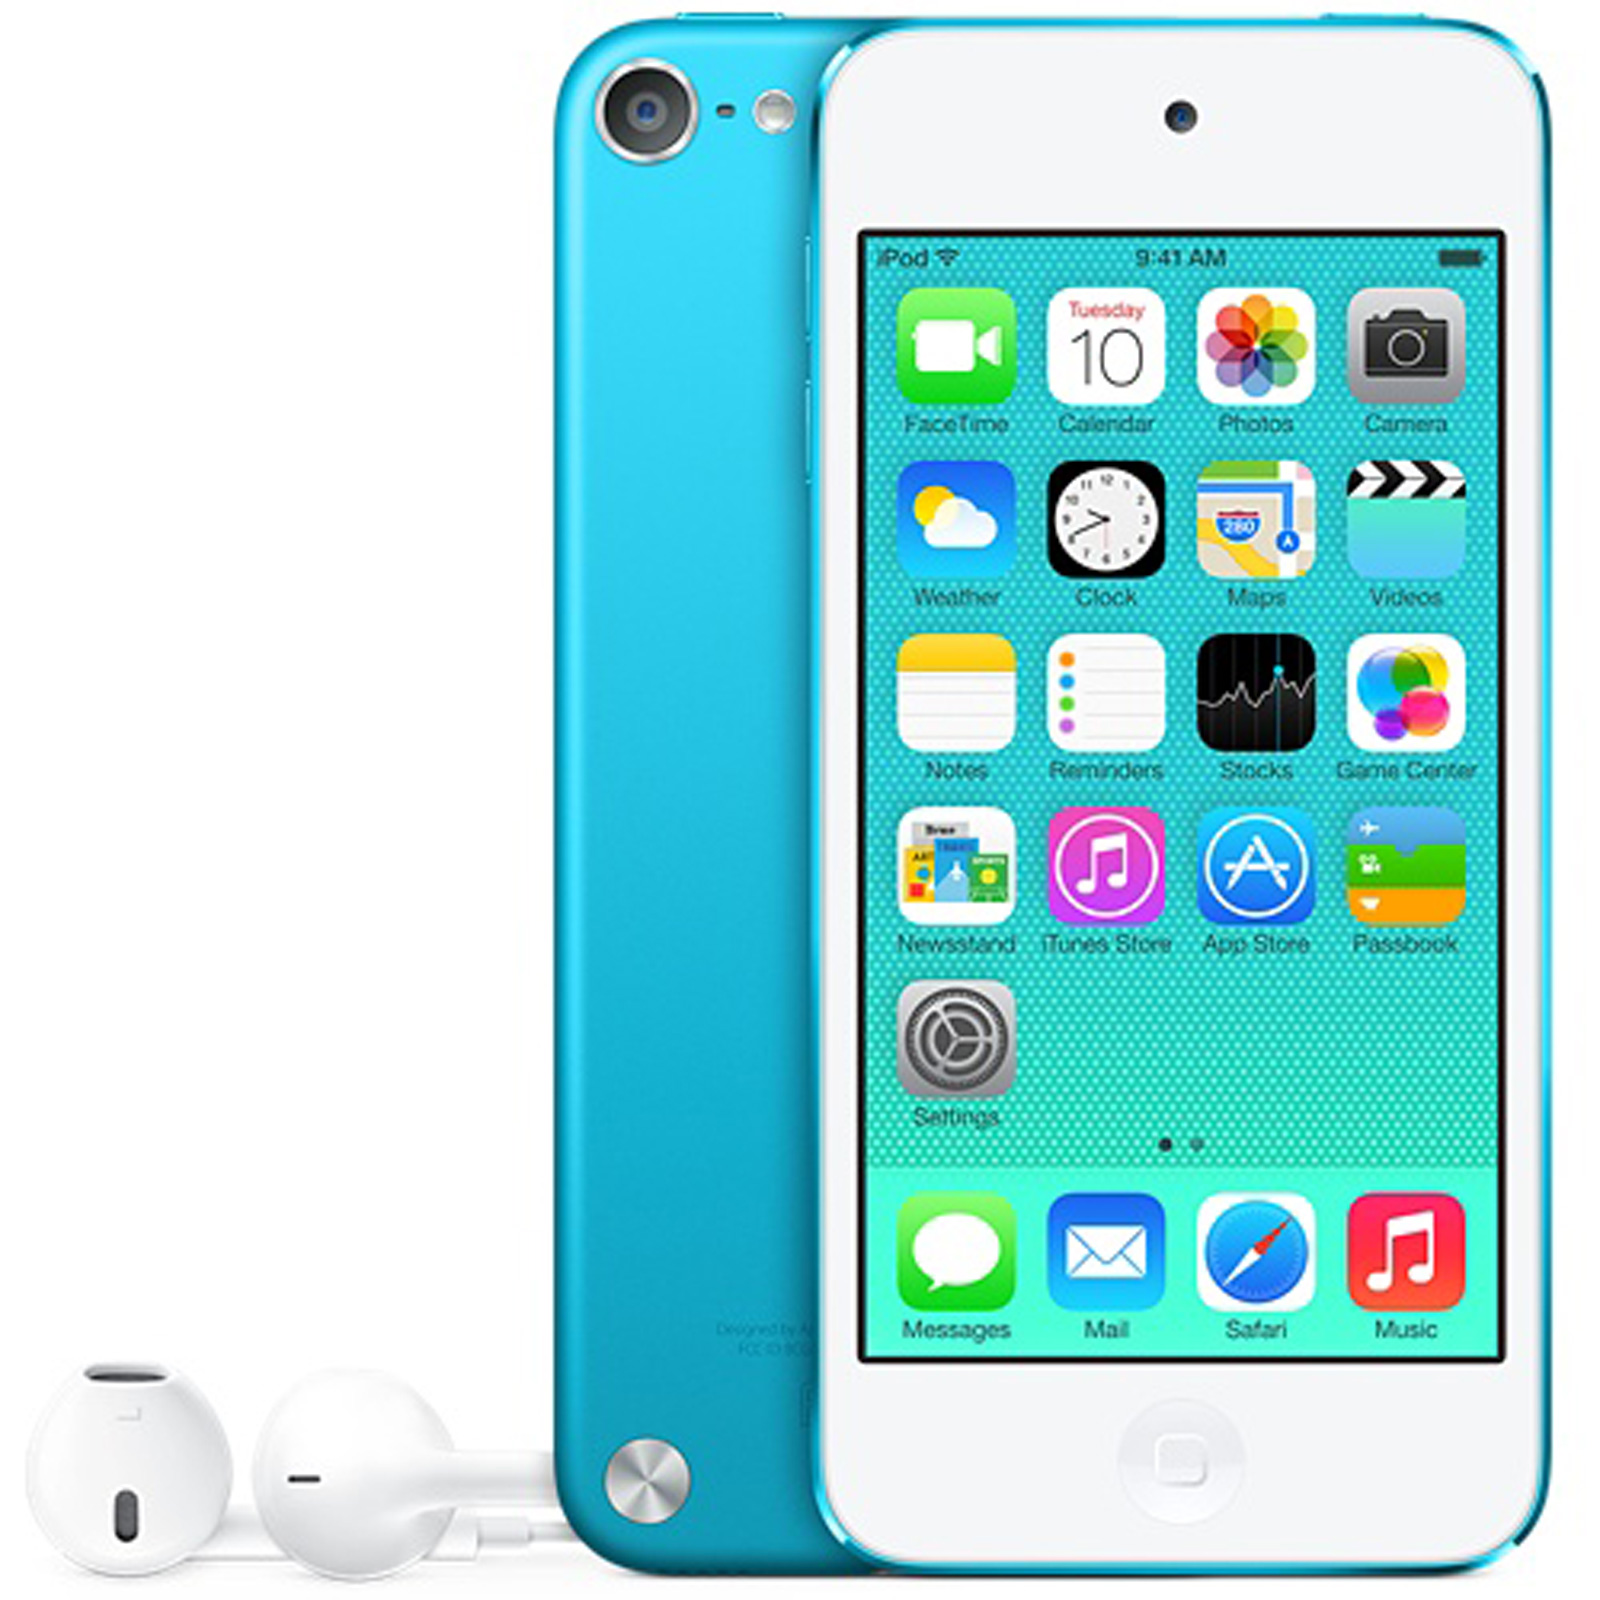 apple ipod touch 16 go bleu mgg32nf a achat vente. Black Bedroom Furniture Sets. Home Design Ideas